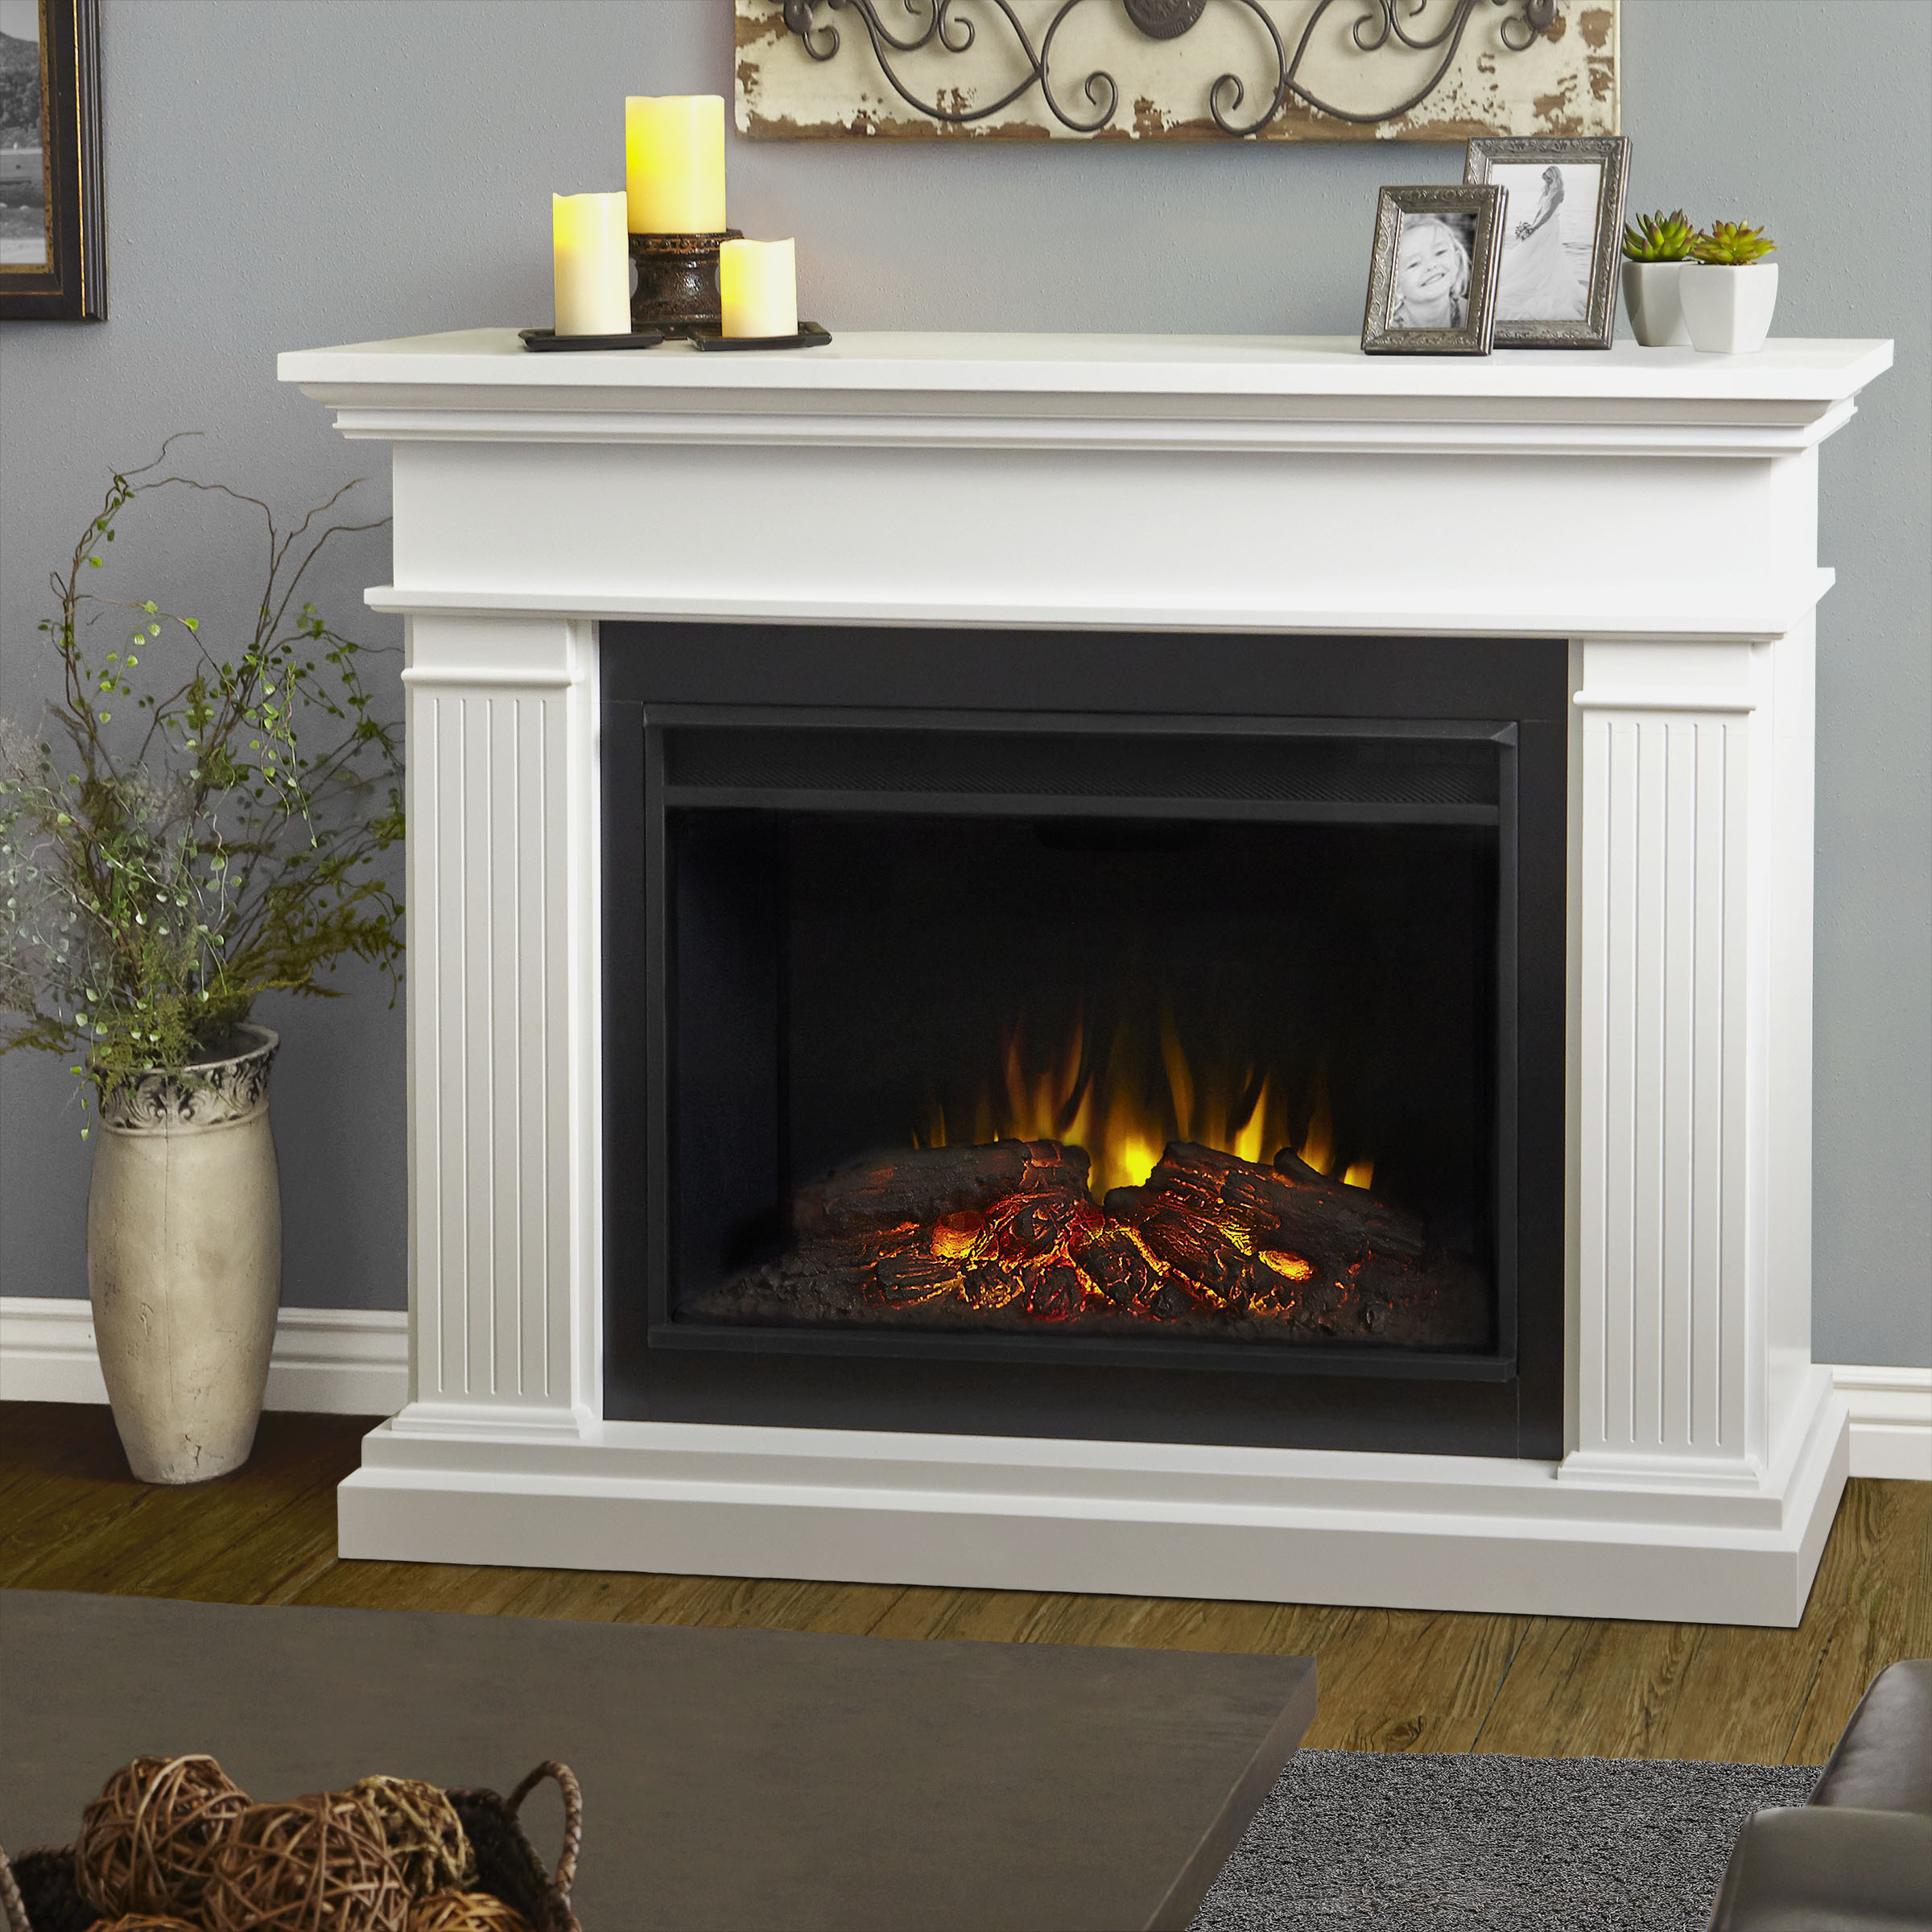 55 5 Kennedy Grand White Electric Fireplace on modern foyer design ideas